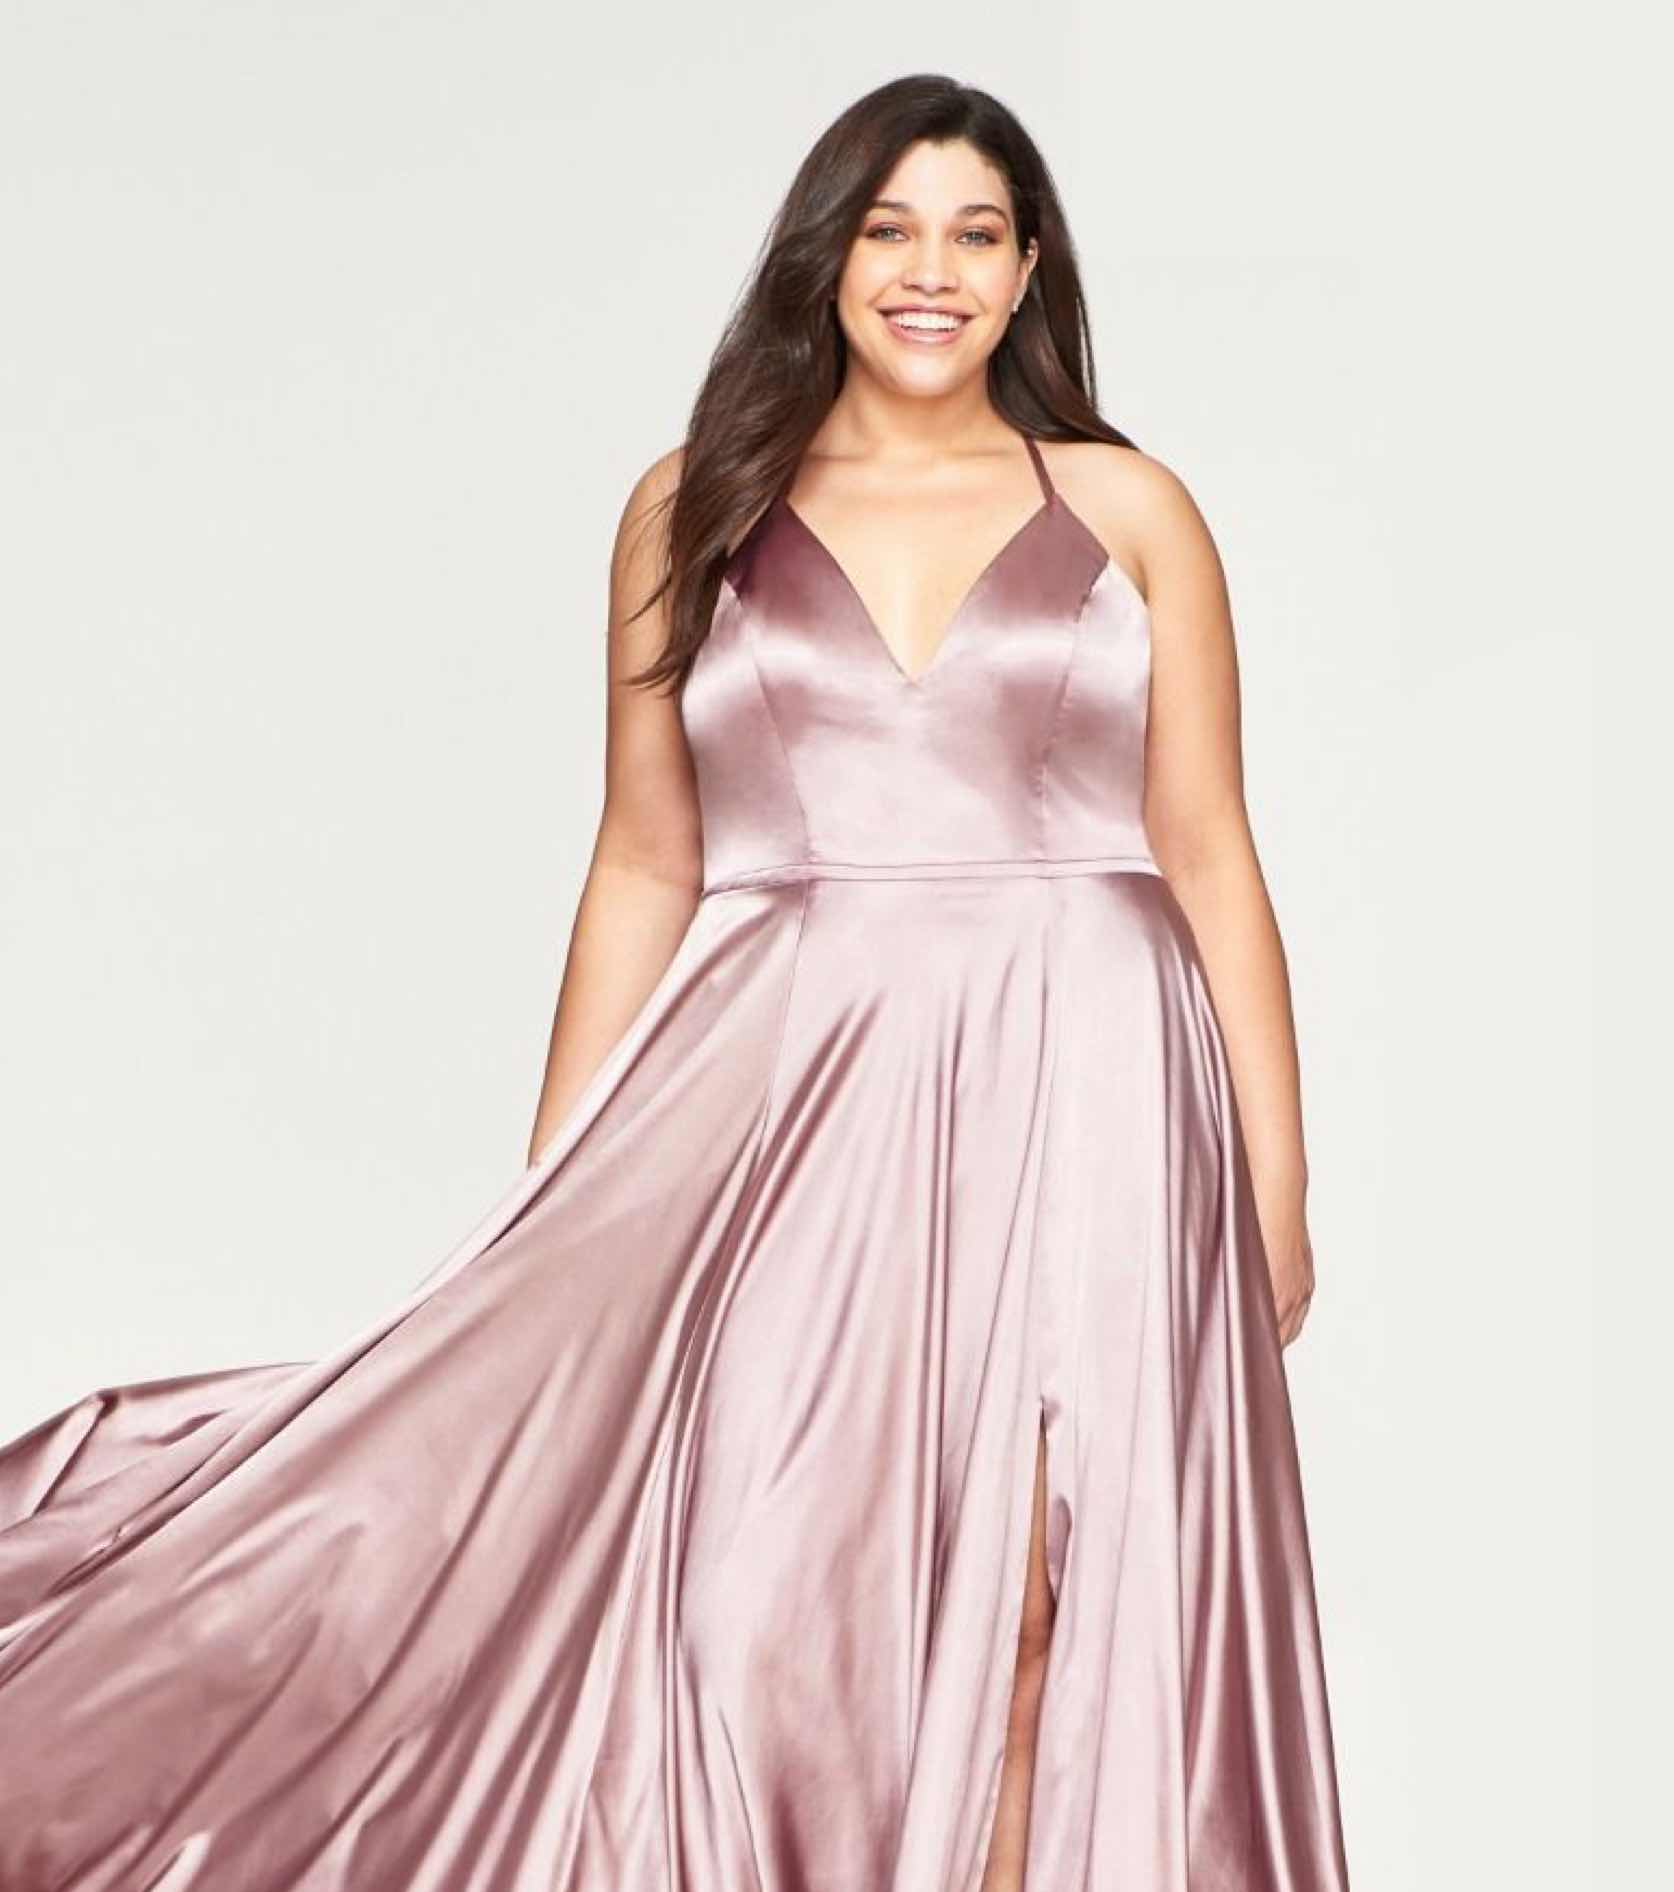 Plus size model in blush satin Faviana dress